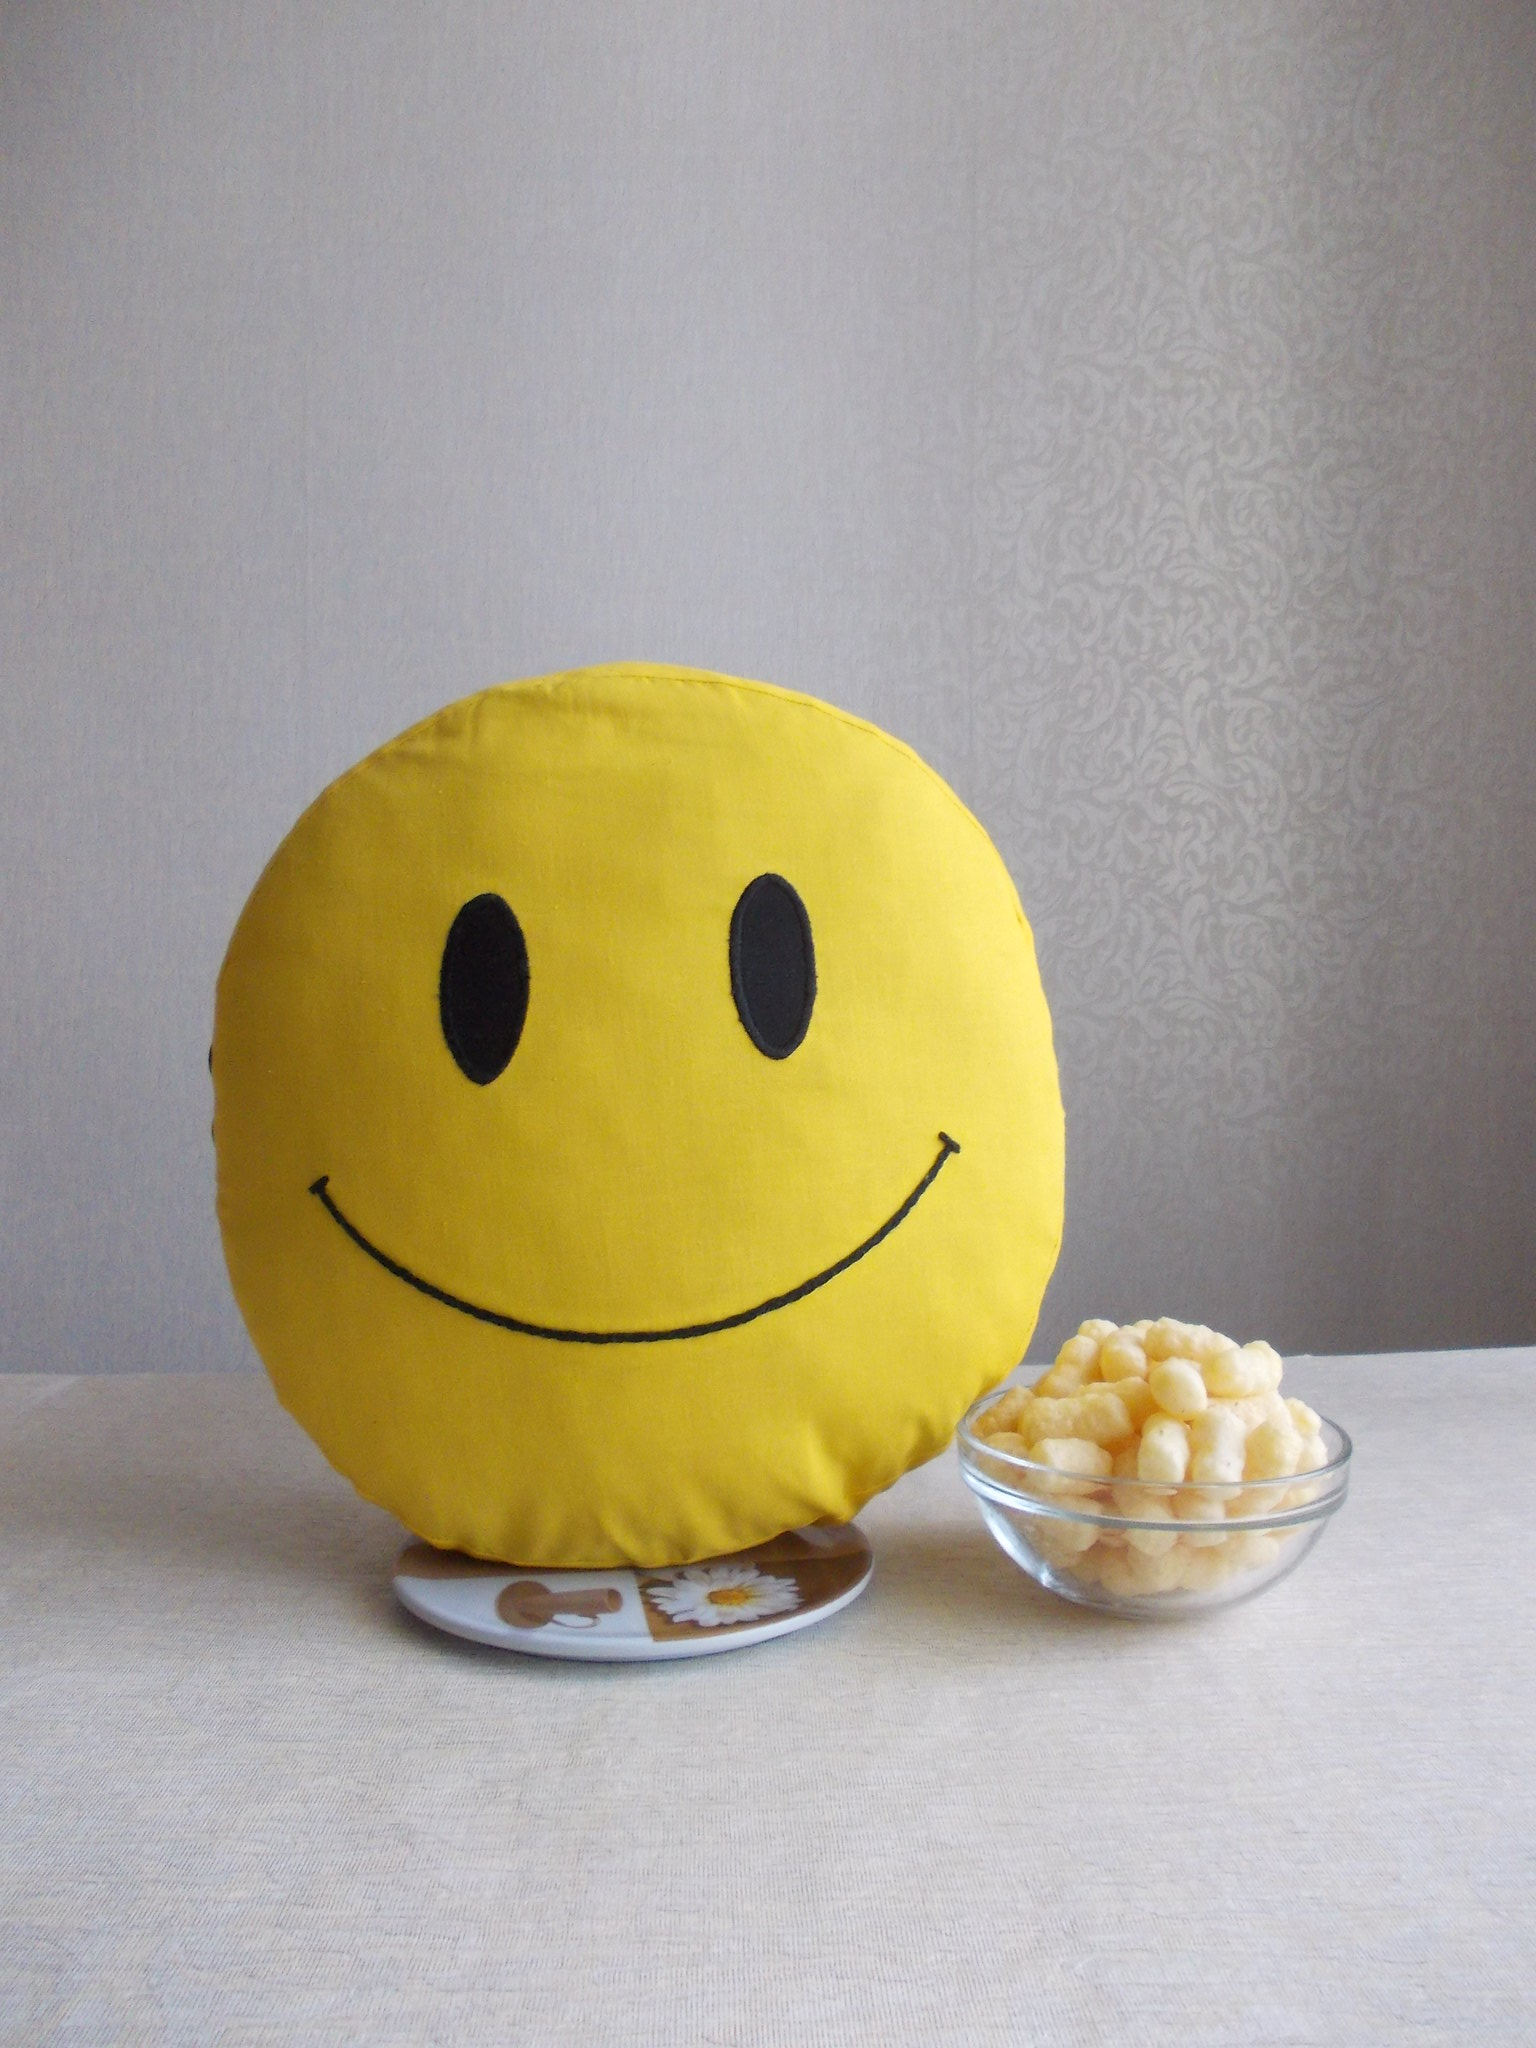 Smiley face cotton yellow round pillow cover, double sided smiley cotton pillow case with insert pillow 10